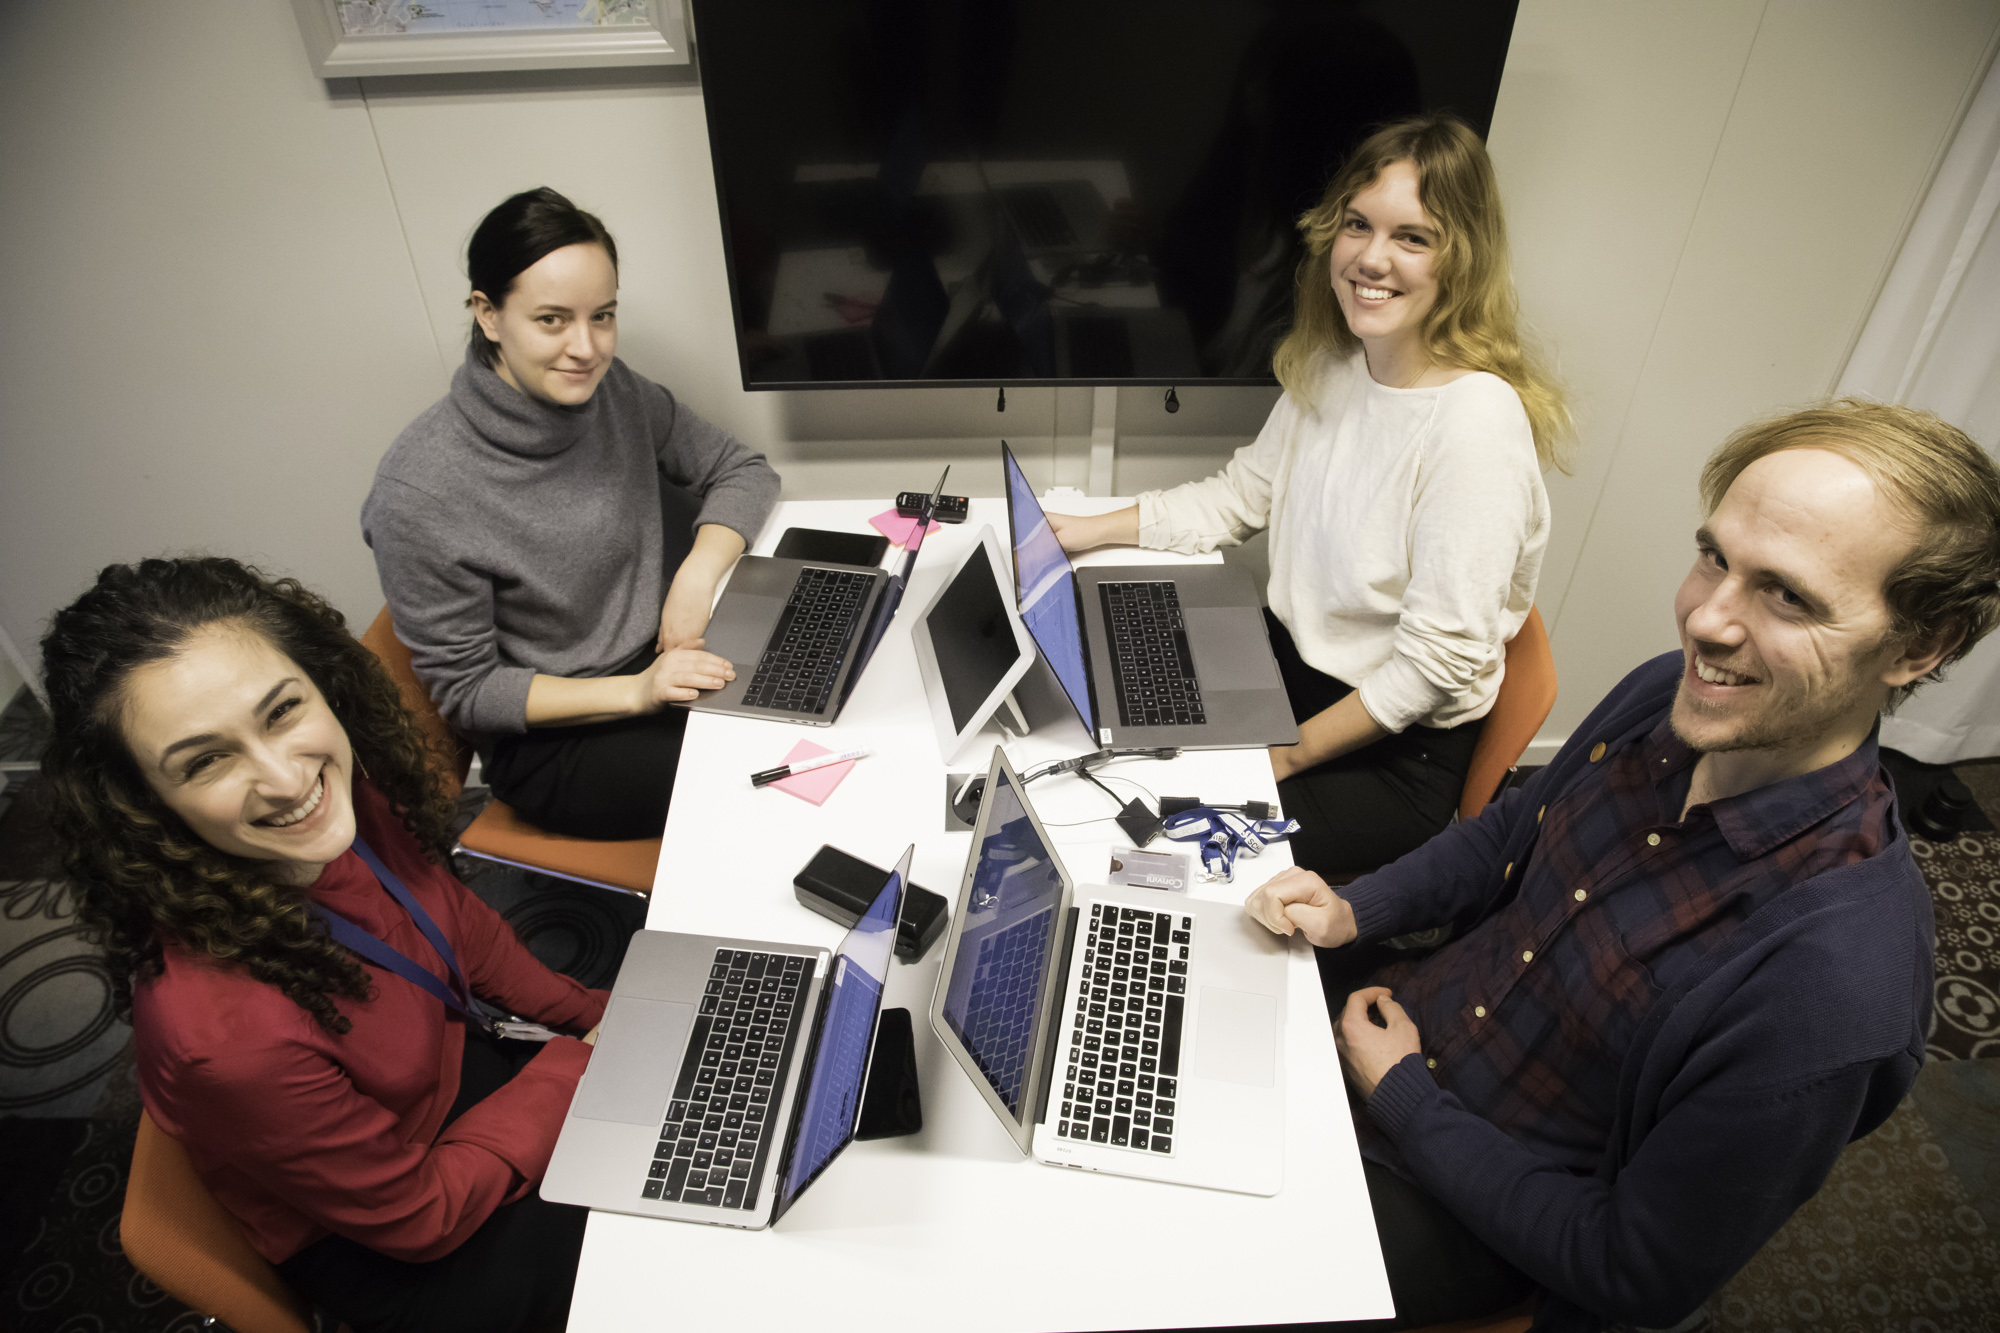 Some of the Stockholm members of the Omni Next team. From left: product manager Djeiran Amini Björklund, associate product manager Jenny Åbonde, designer Hanna Röstberg, and UX researcher Niklas Fyrvald.